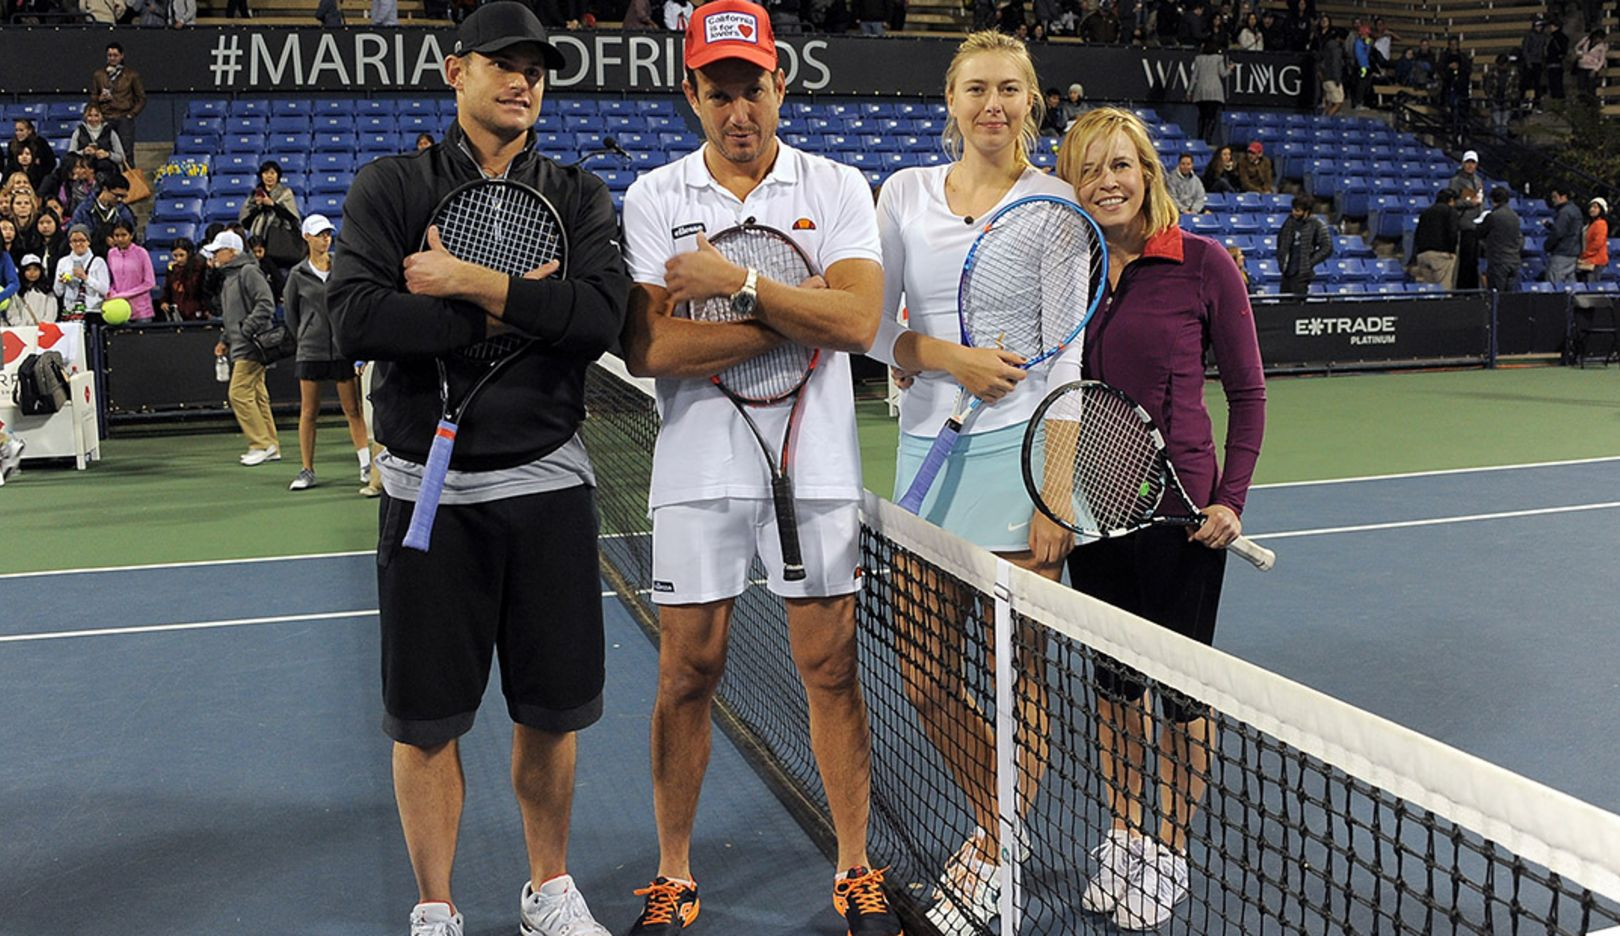 l-r Andy Roddick (USA), Will Arnett (Canada), Maria Sharapova, Chelsea Handler (USA), Maria Sharapova & Friends, Los Angeles, 2015, Porsche AG